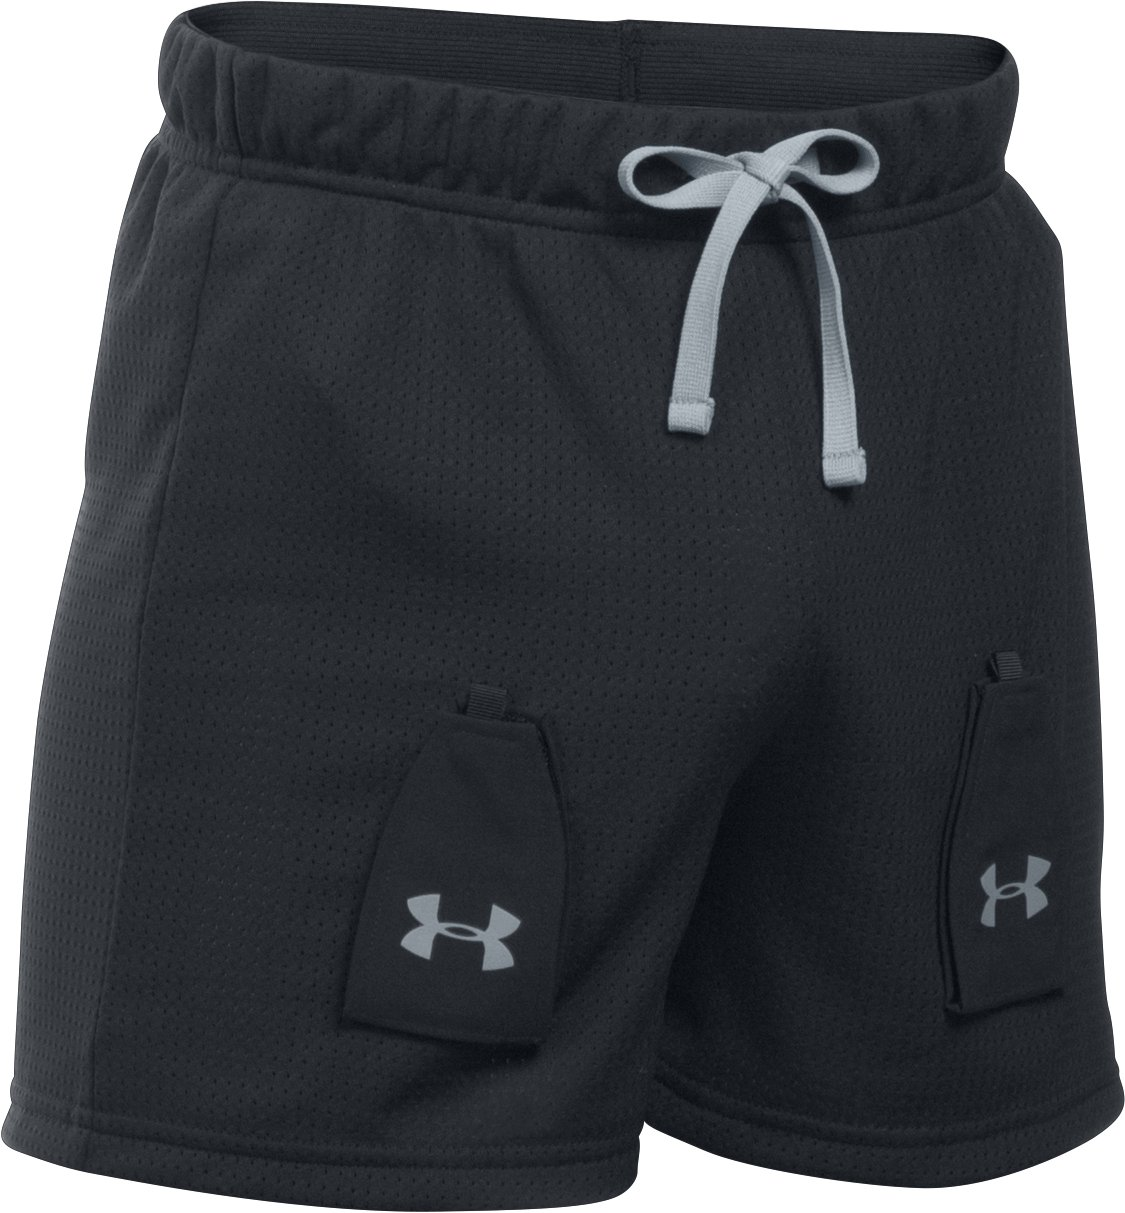 Boys' UA Hockey Mesh Shorts w/ Cup Pocket, Black , undefined